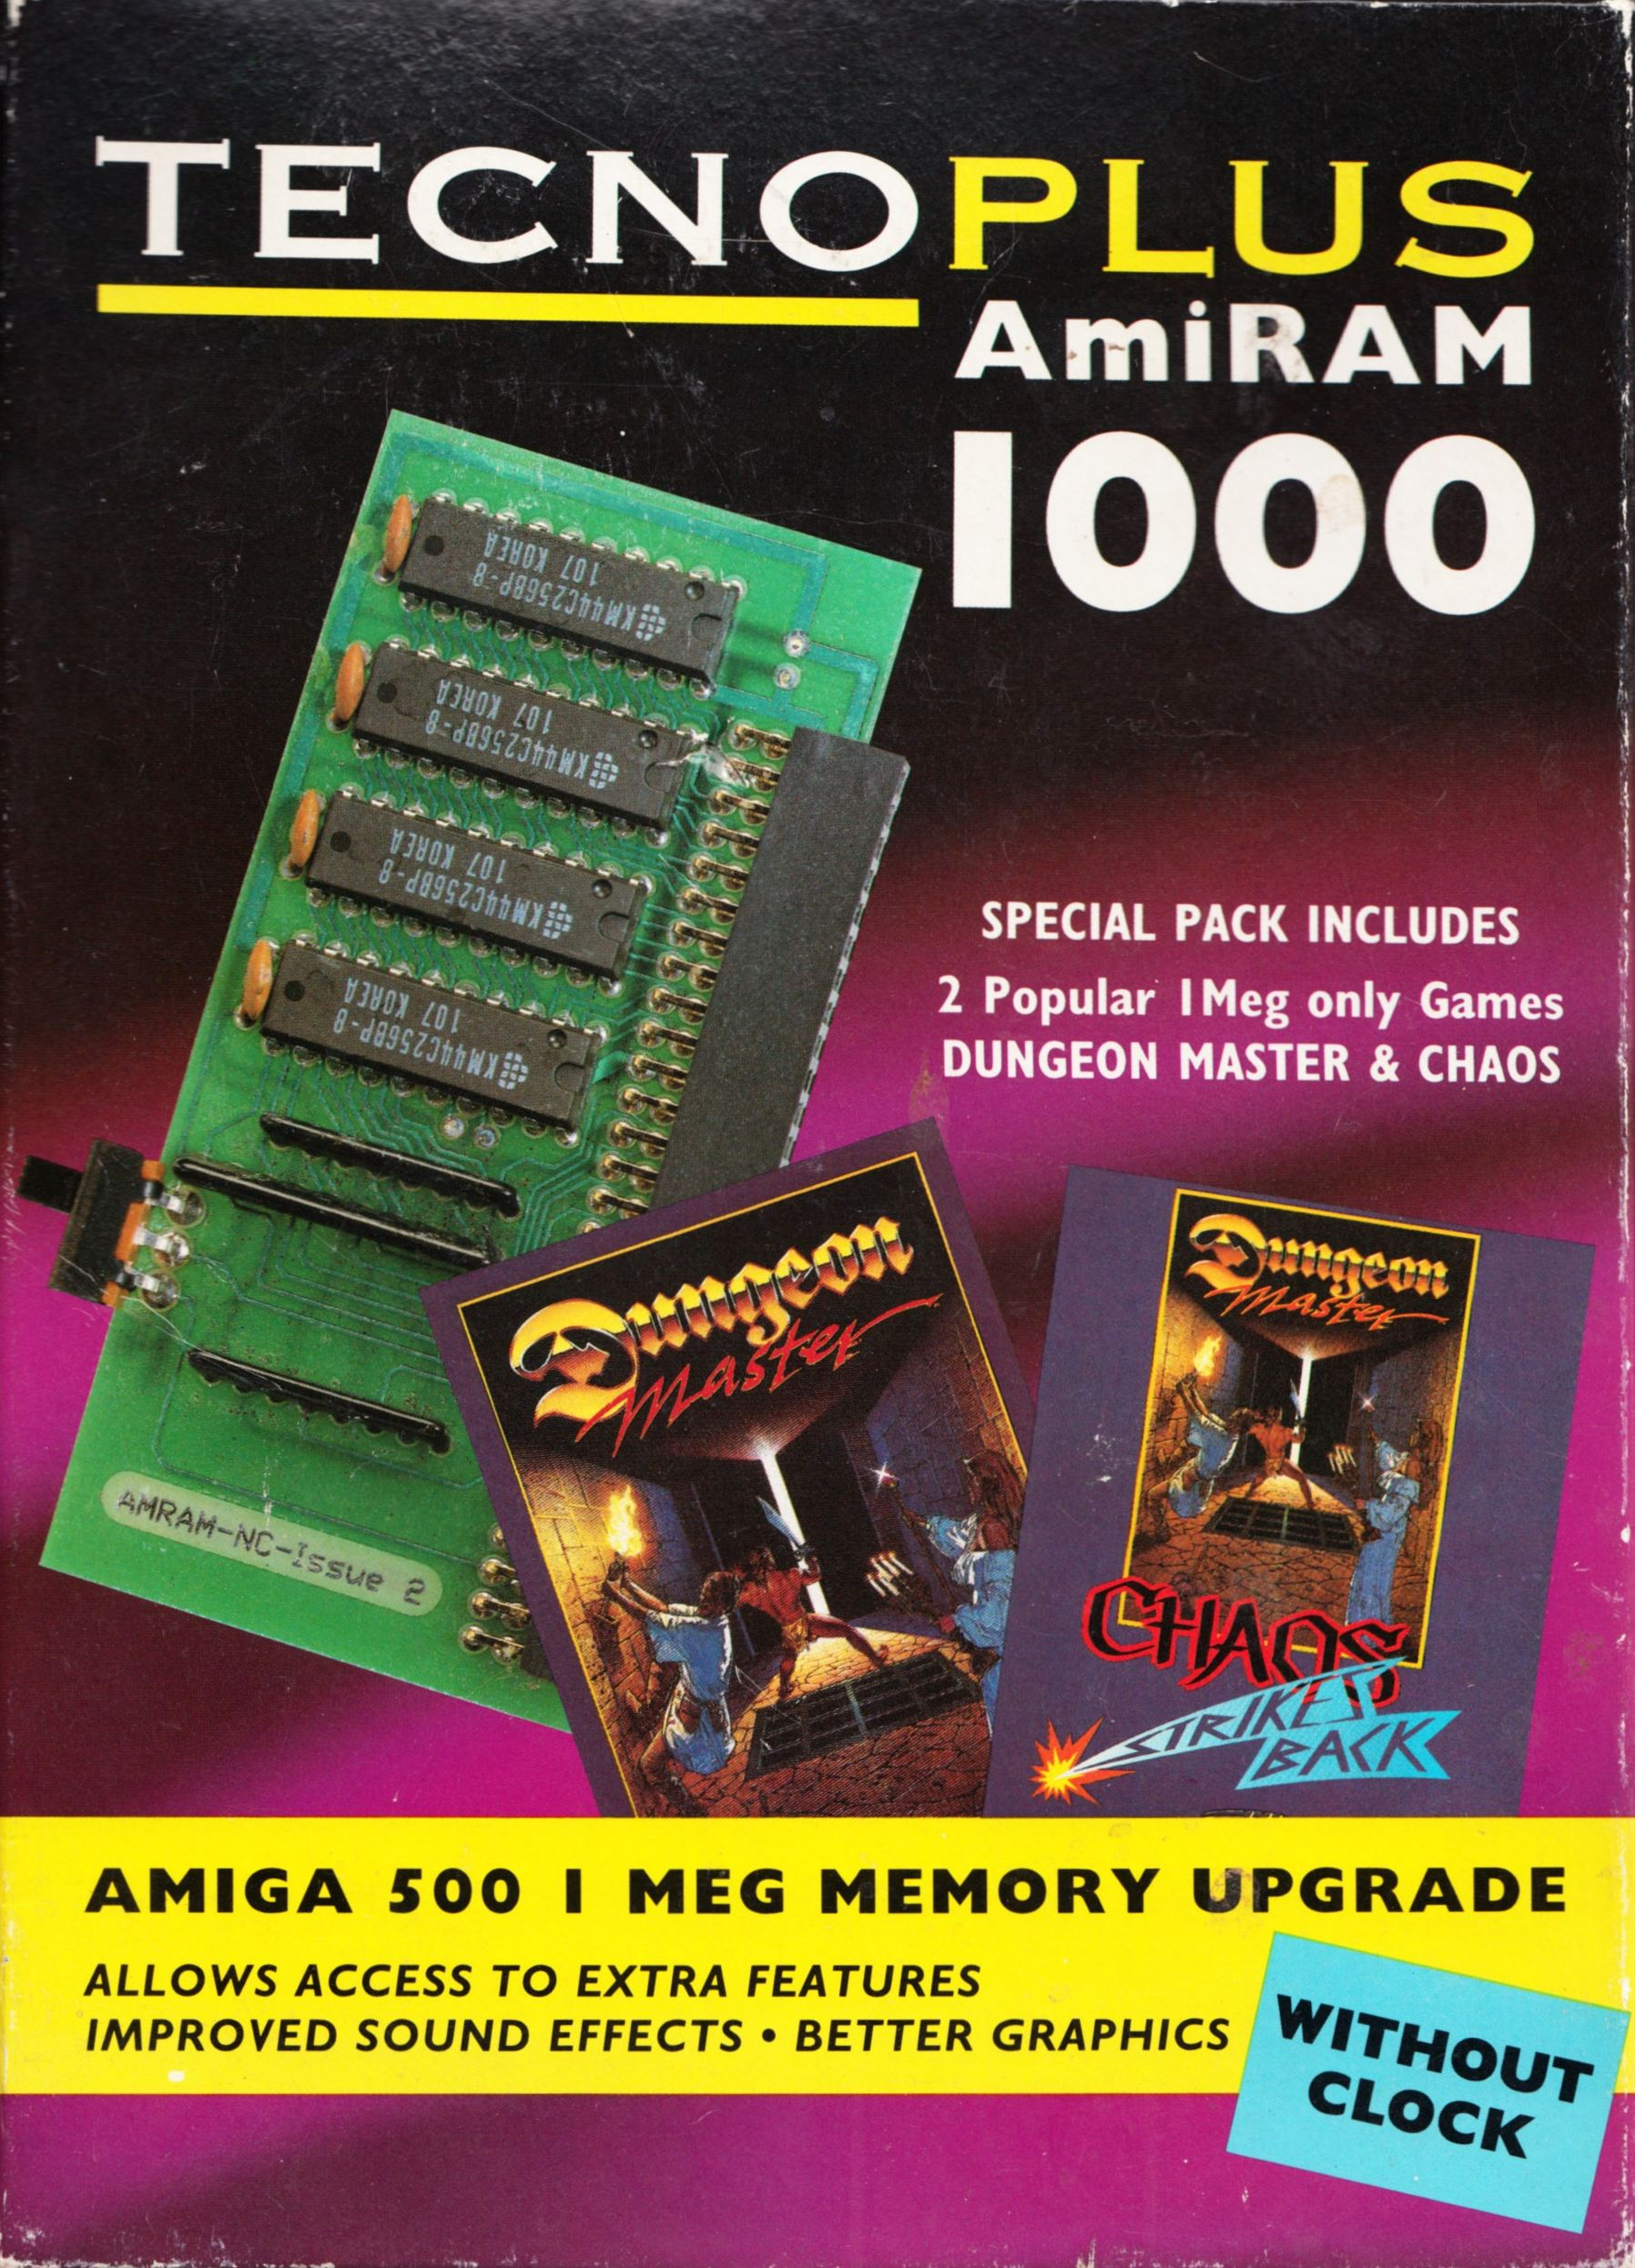 Memory Card - AmiRAM 1000 - EU - Amiga - Without Clock DM CSB - Box - Front - Scan